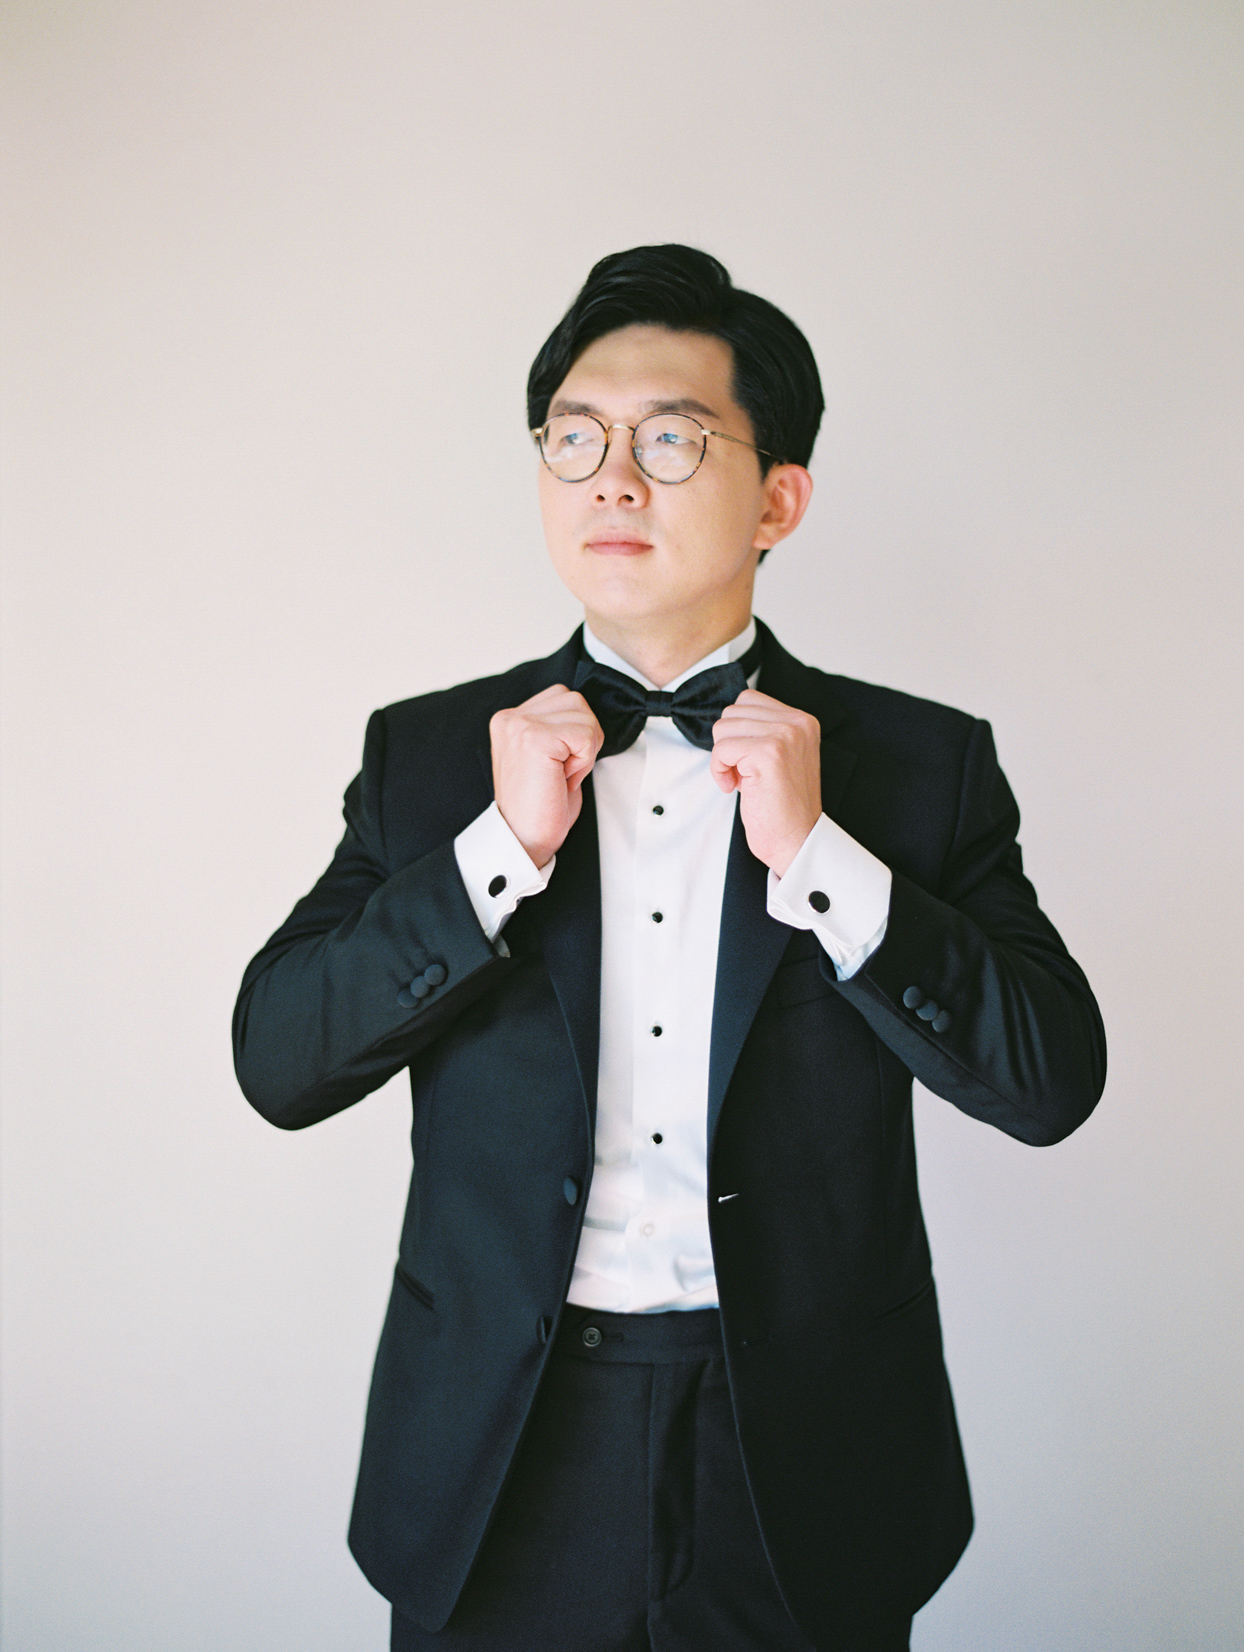 groom in black tux with bowtie and black cufflinks